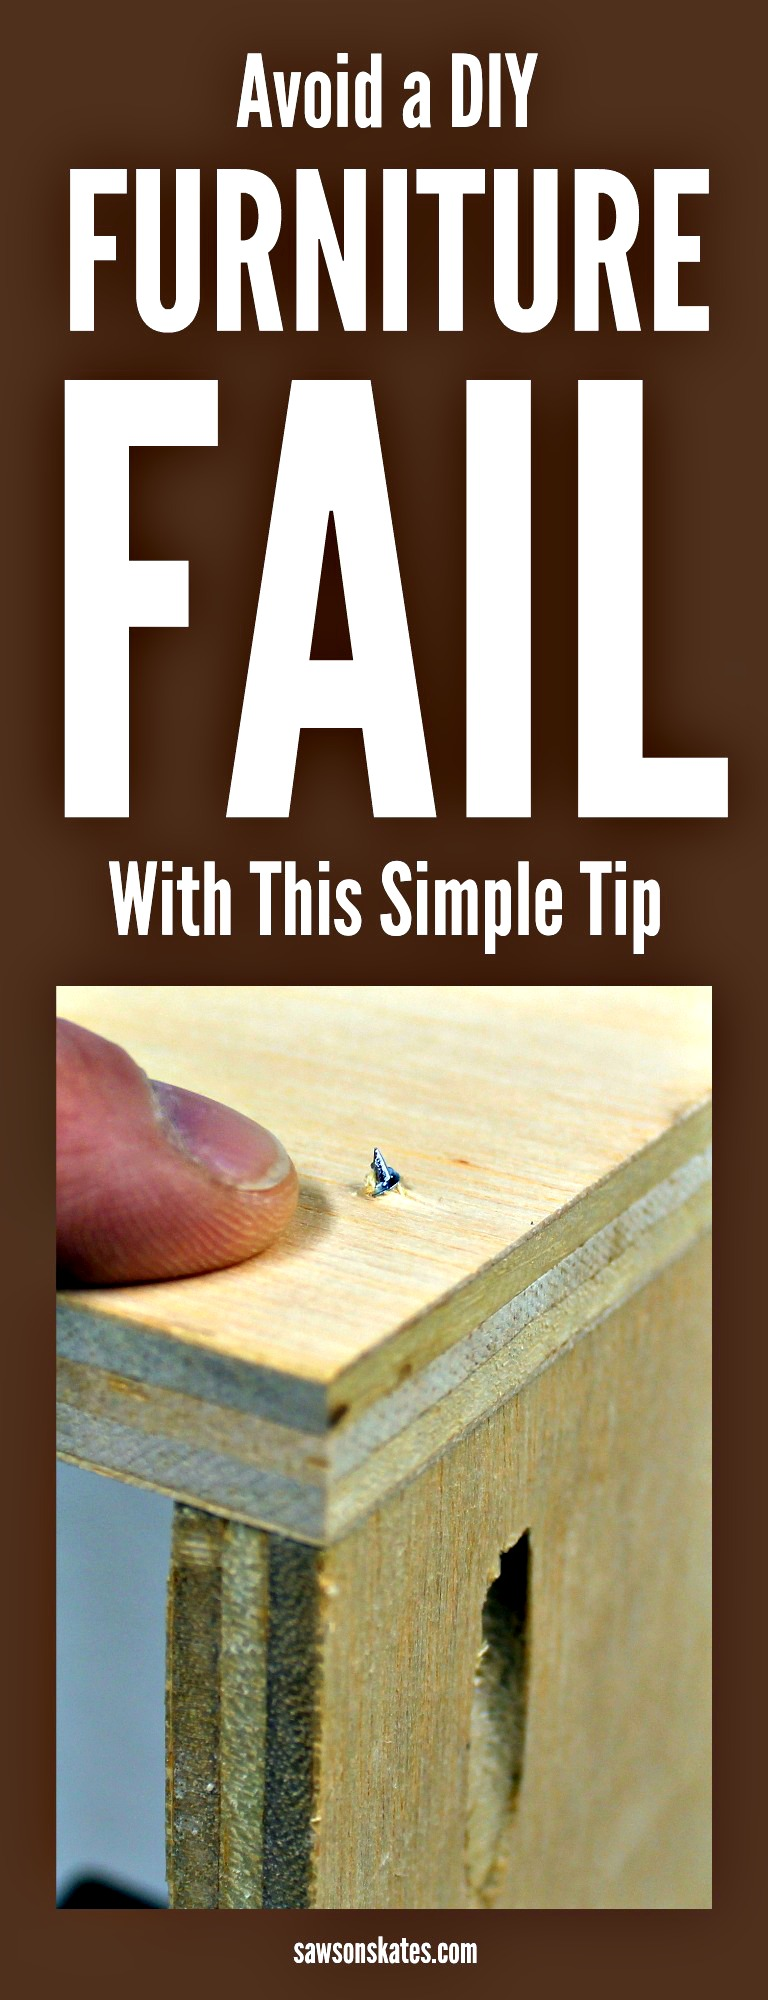 We've all had a DIY furniture fail. We've accidentally driven a pocket screw through the edge of a board or ripped a piece too narrow on our table saw. These mistakes are a waste of time, a waste of money and cause us major frustration. The other thing is these mistakes aren't accidents at all. Most of these mistakes can be avoided. In this post I'm sharing a simple tip to help you avoid furniture fails.